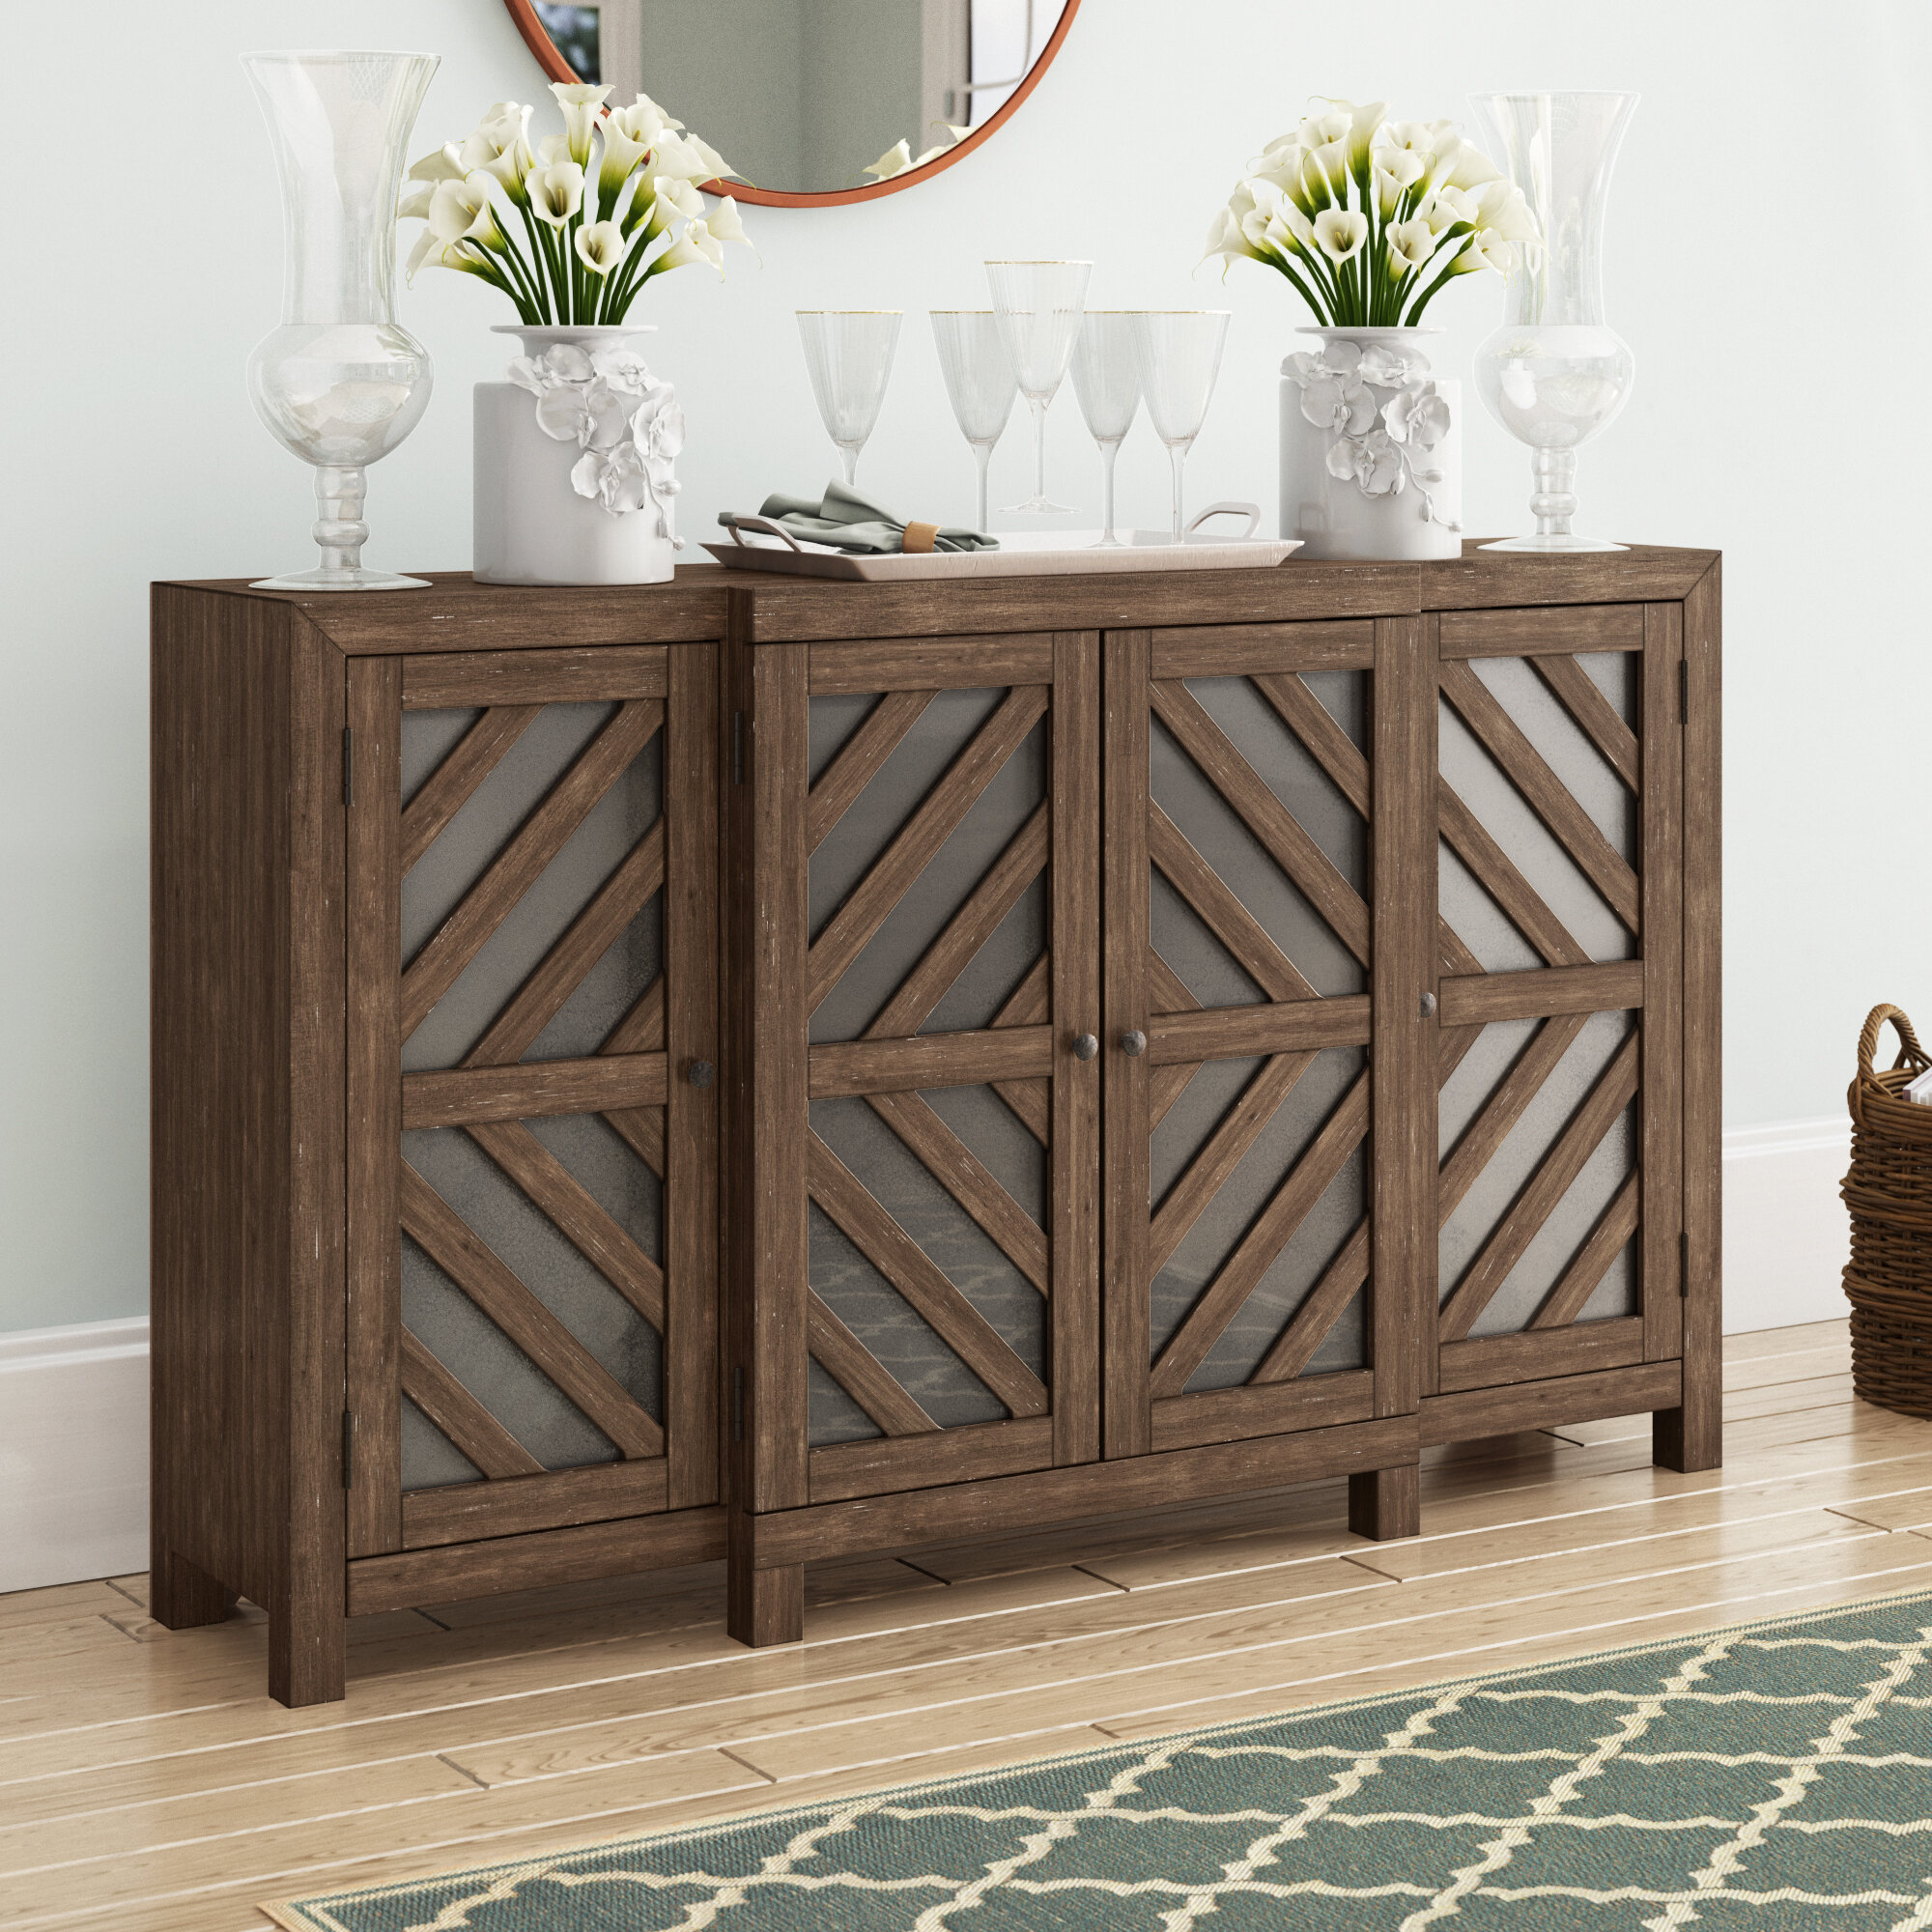 60 Inch Credenza | Wayfair For Elyza Credenzas (View 12 of 30)